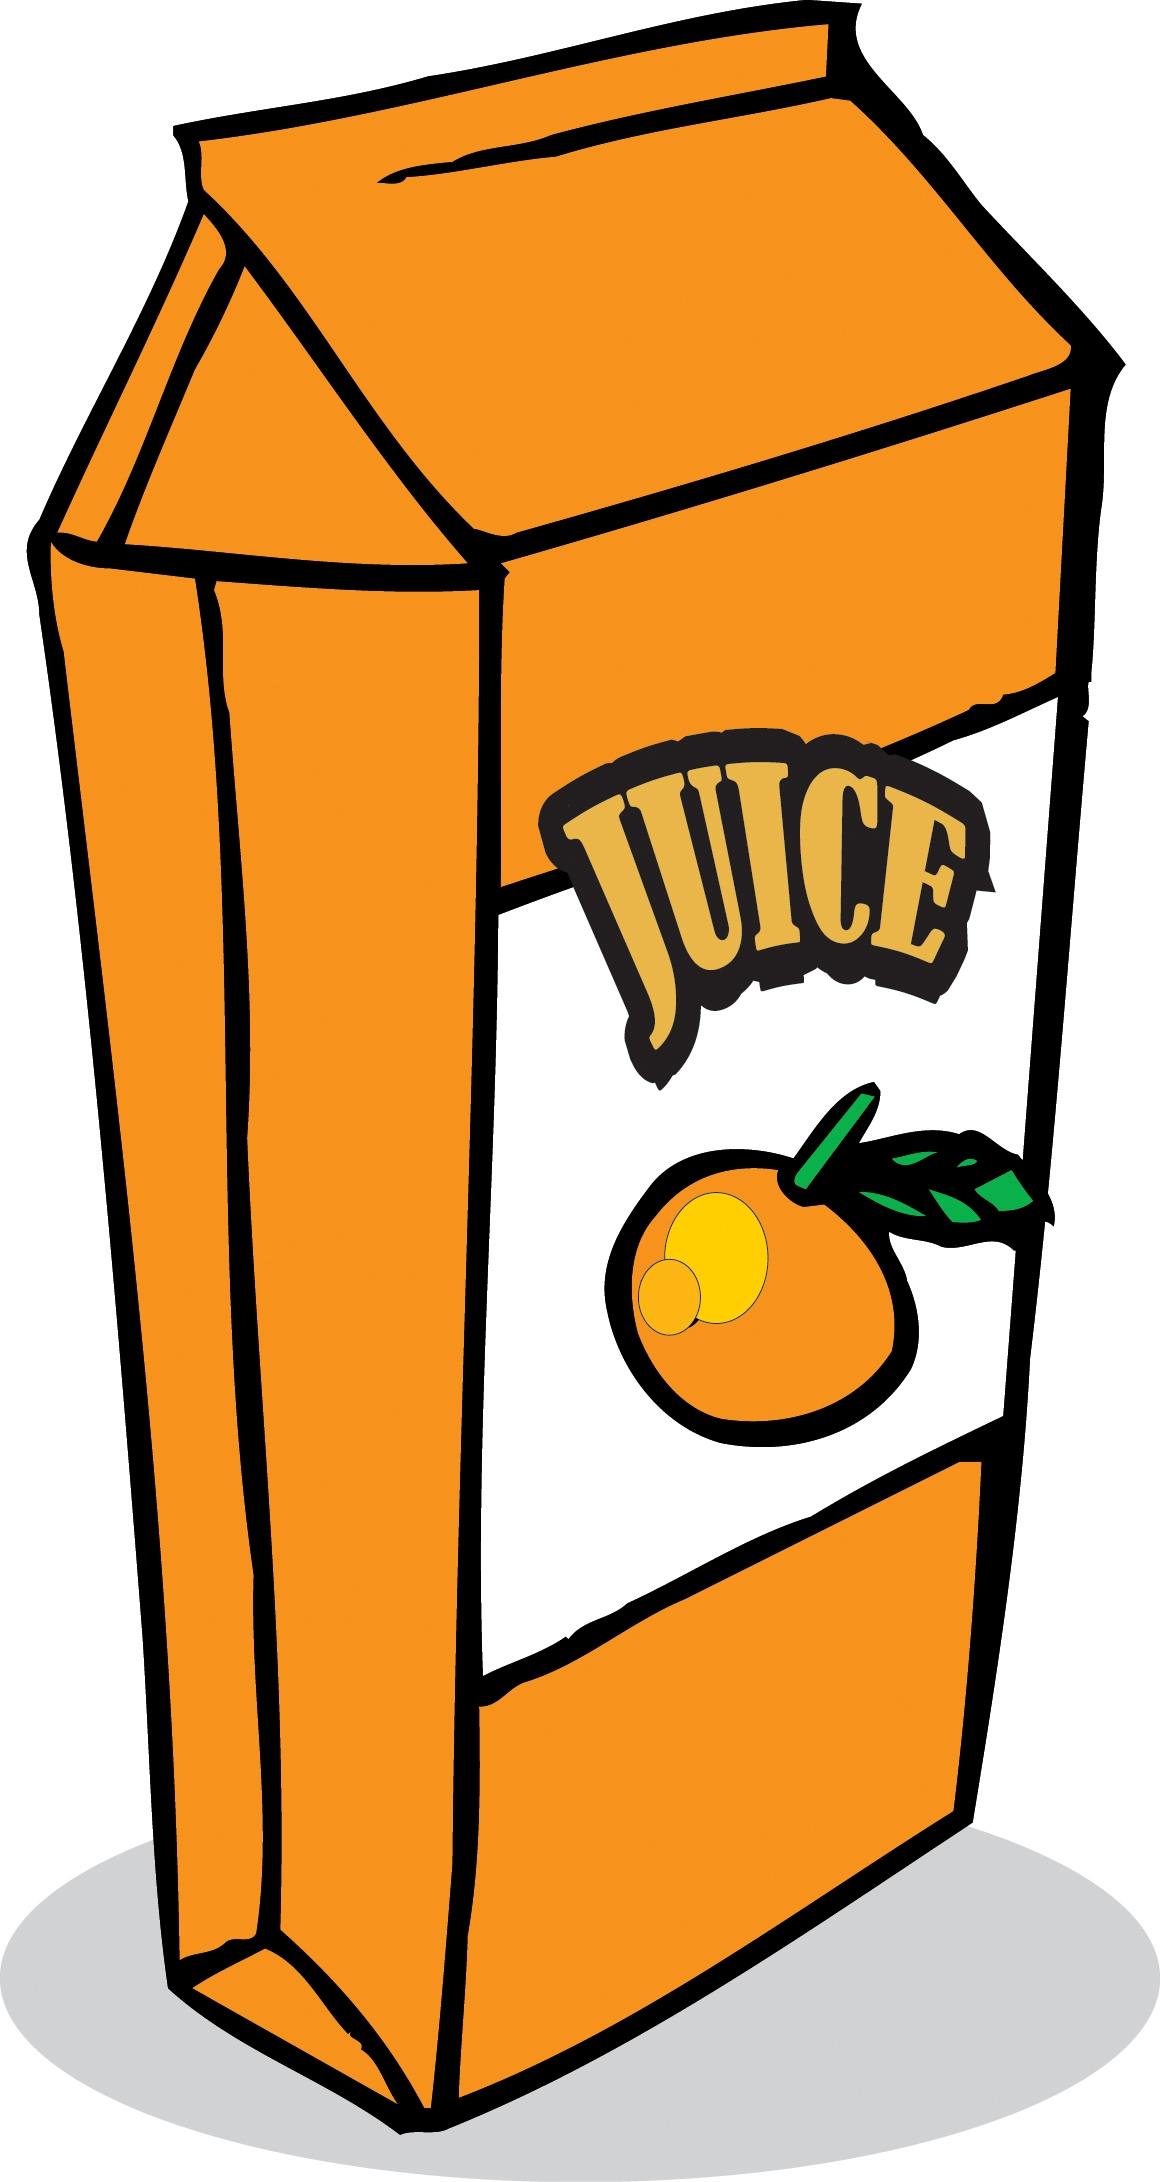 Juice clipart. Awesome collection digital coloring